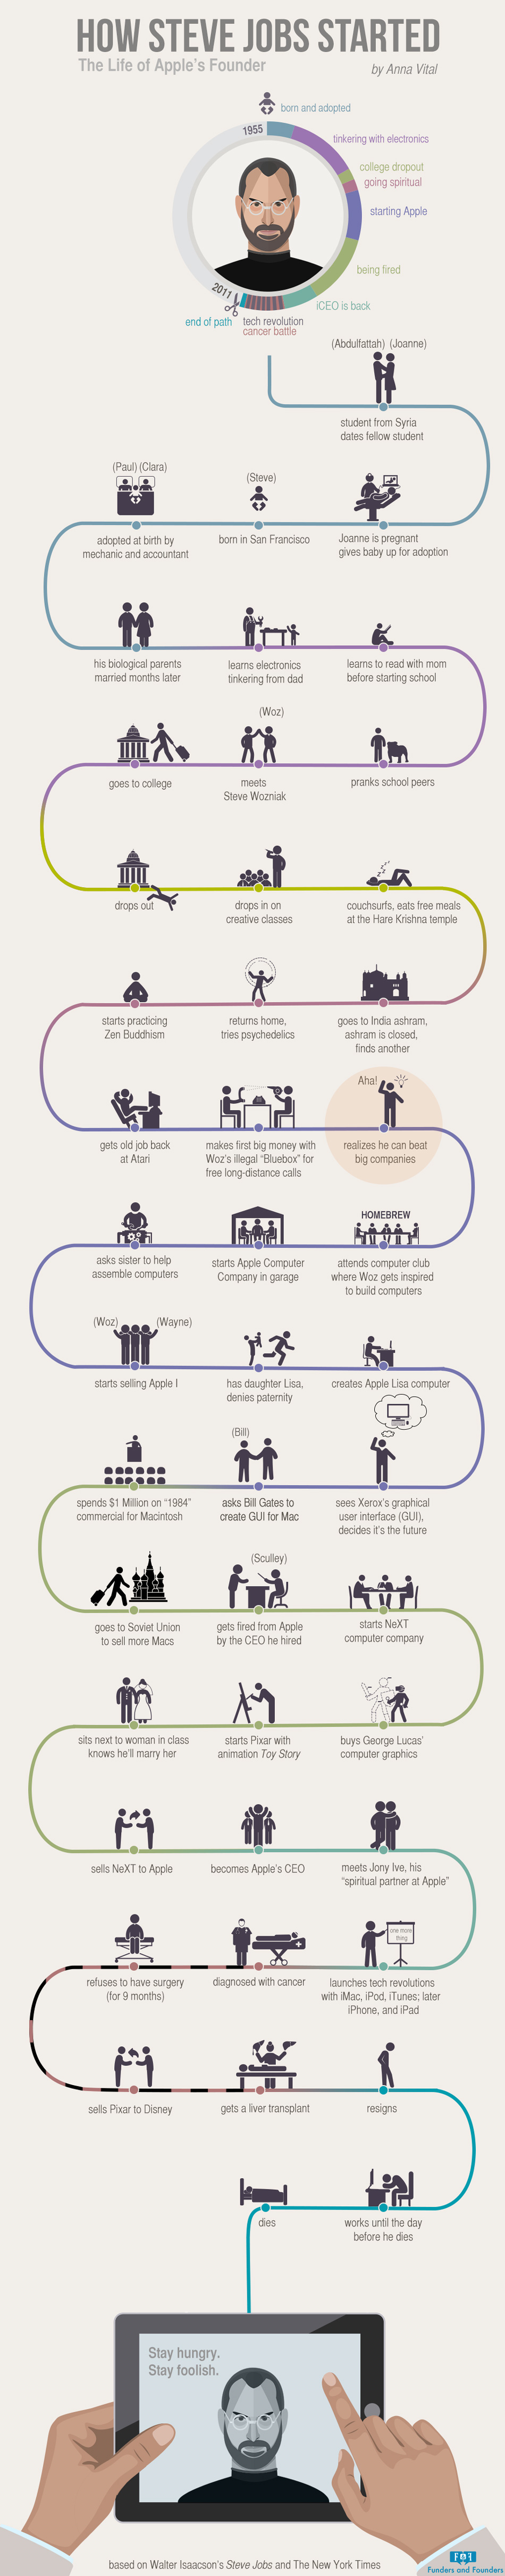 How-Steve-Jobs-Started-apple-founder-infographic